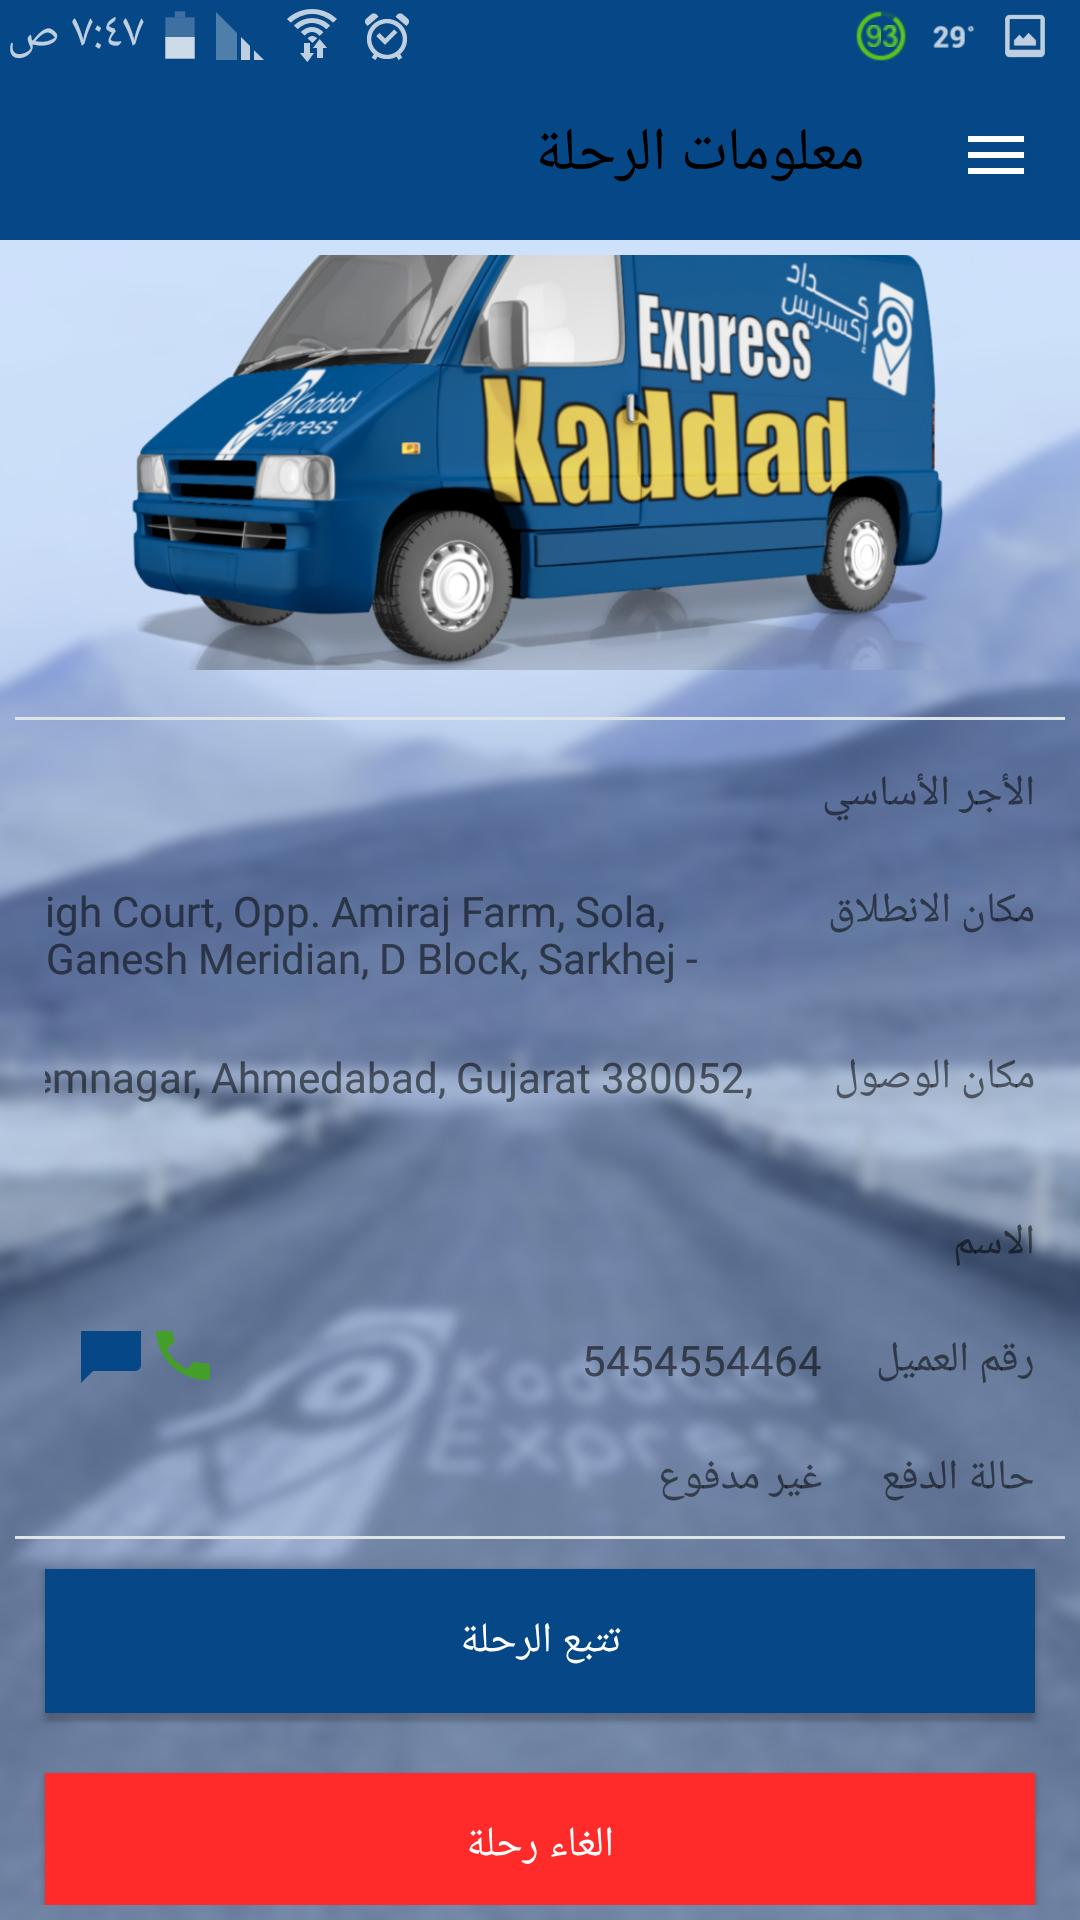 Kaddad Express Customer poster